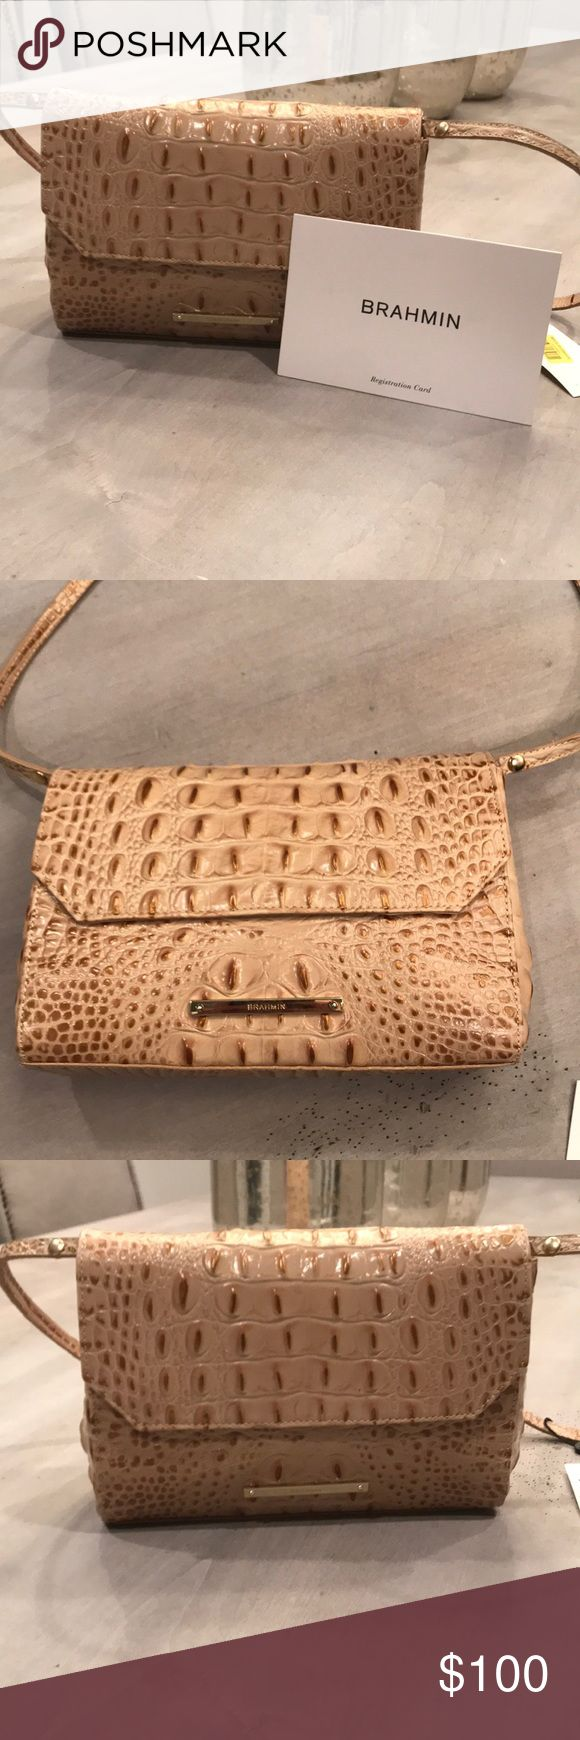 Brahmin Purse Carina Champagne NWT The Carina features a removable shoulder strap that converts the handbag into a clutch. Complete with the signature organizational features Brahmin is known for. Featured in Champagne Melbourne, a neutral-hued crocodile embossed leather with subtle gold tipping. Brahmin Bags Shoulder Bags